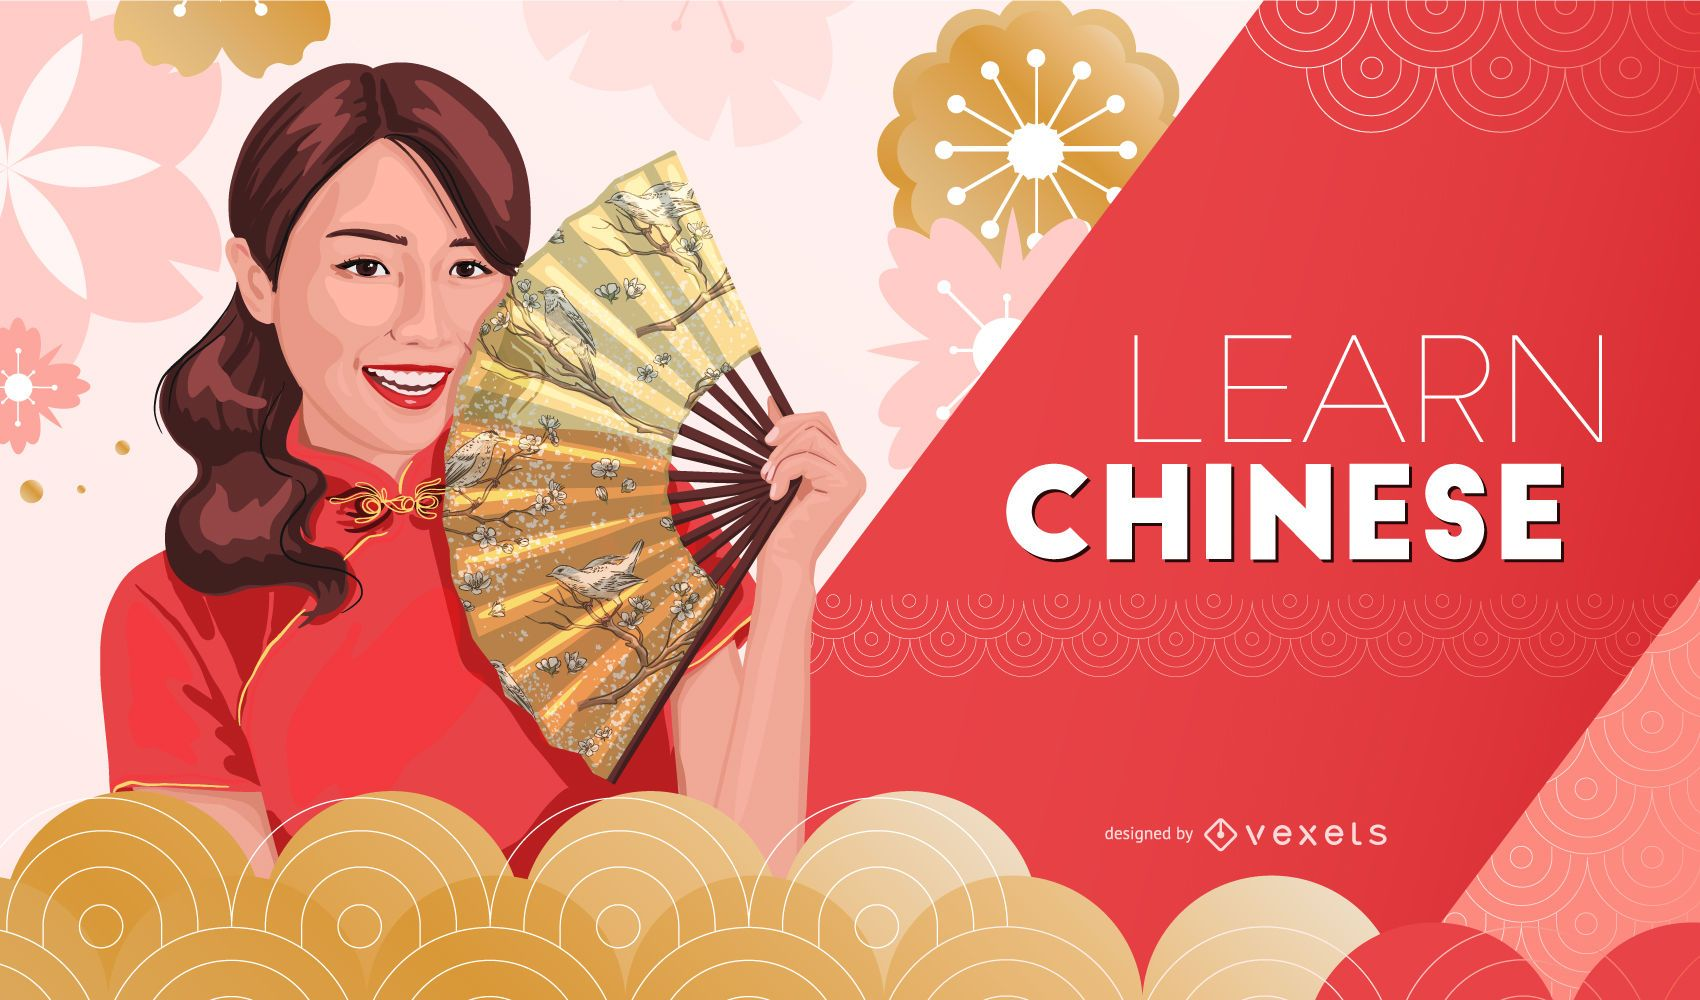 Learn Chinese Cover Design